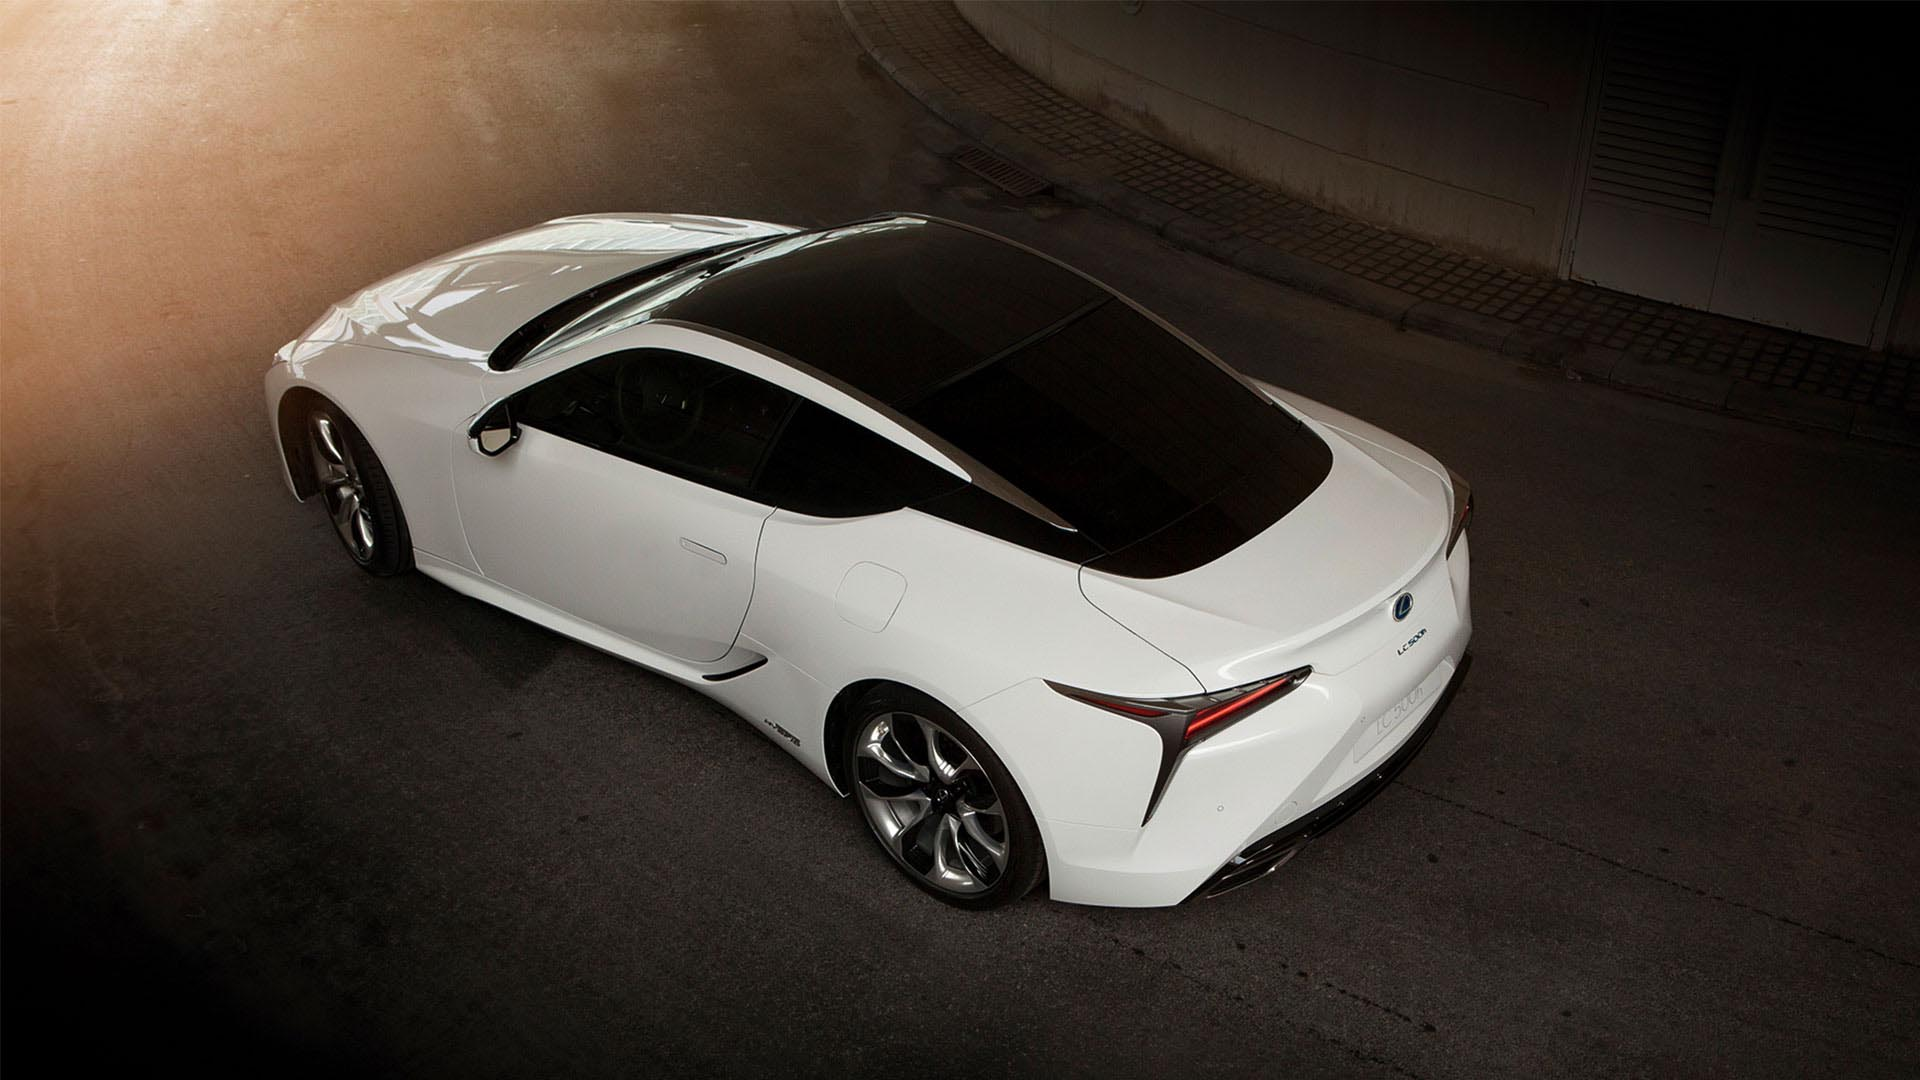 2017 lexus lc 500h next steps personalise 001